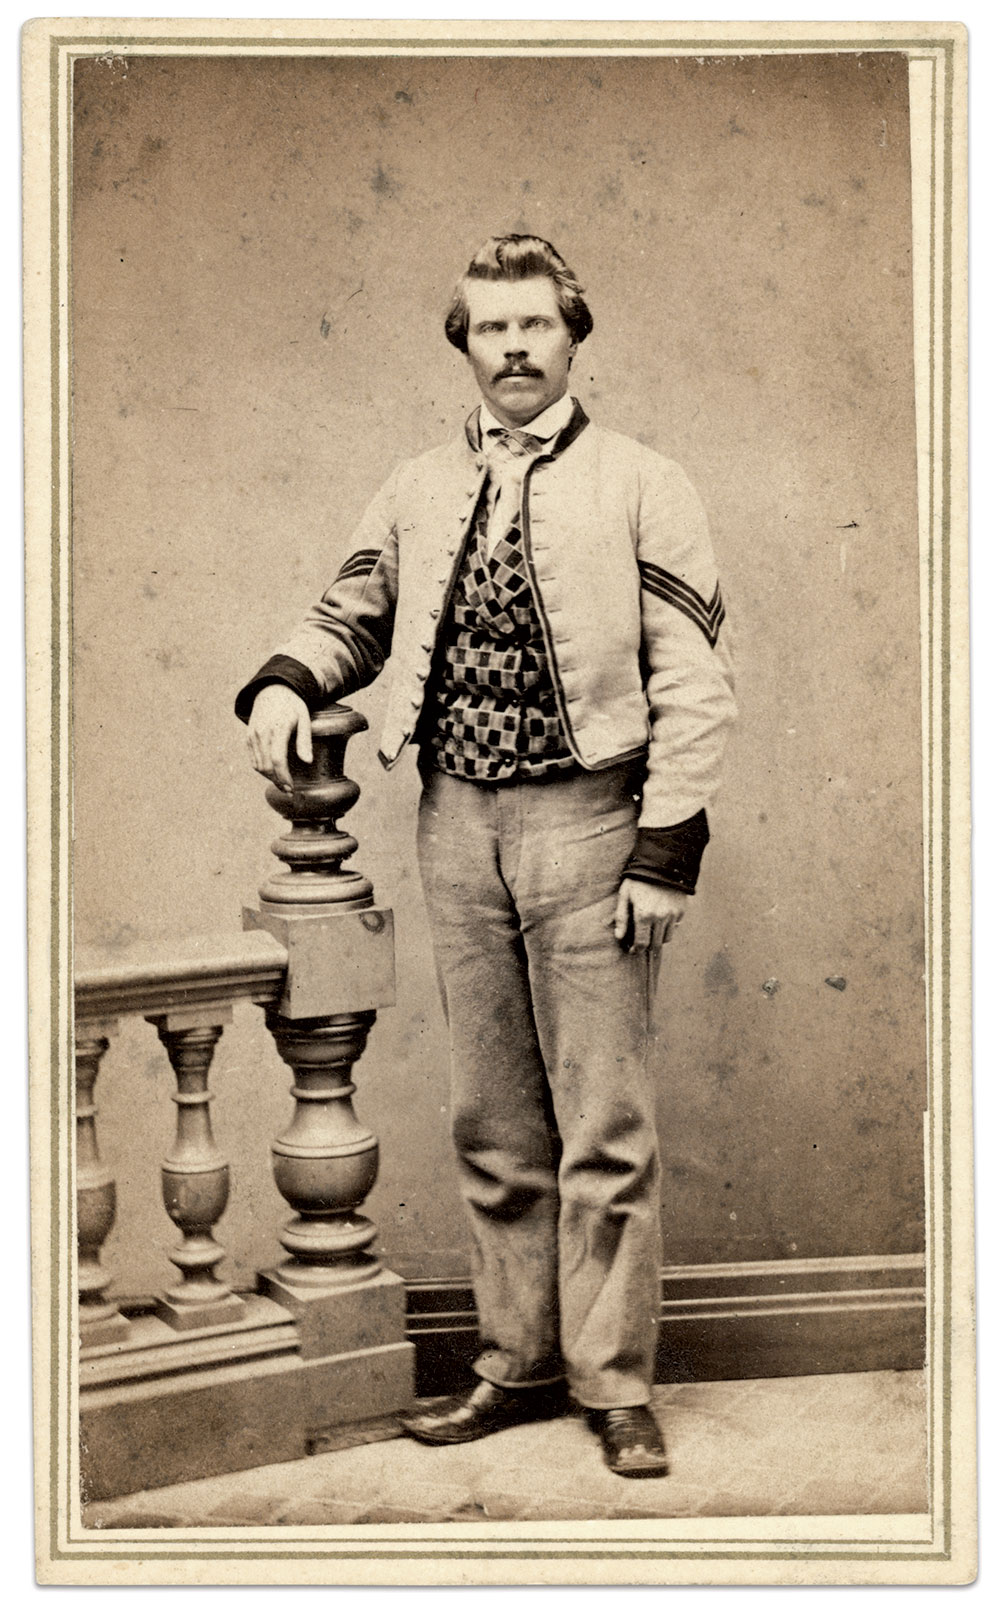 Carte de visite by E.R. Curtiss of Madison, Wis. Gary Pagel Collection.